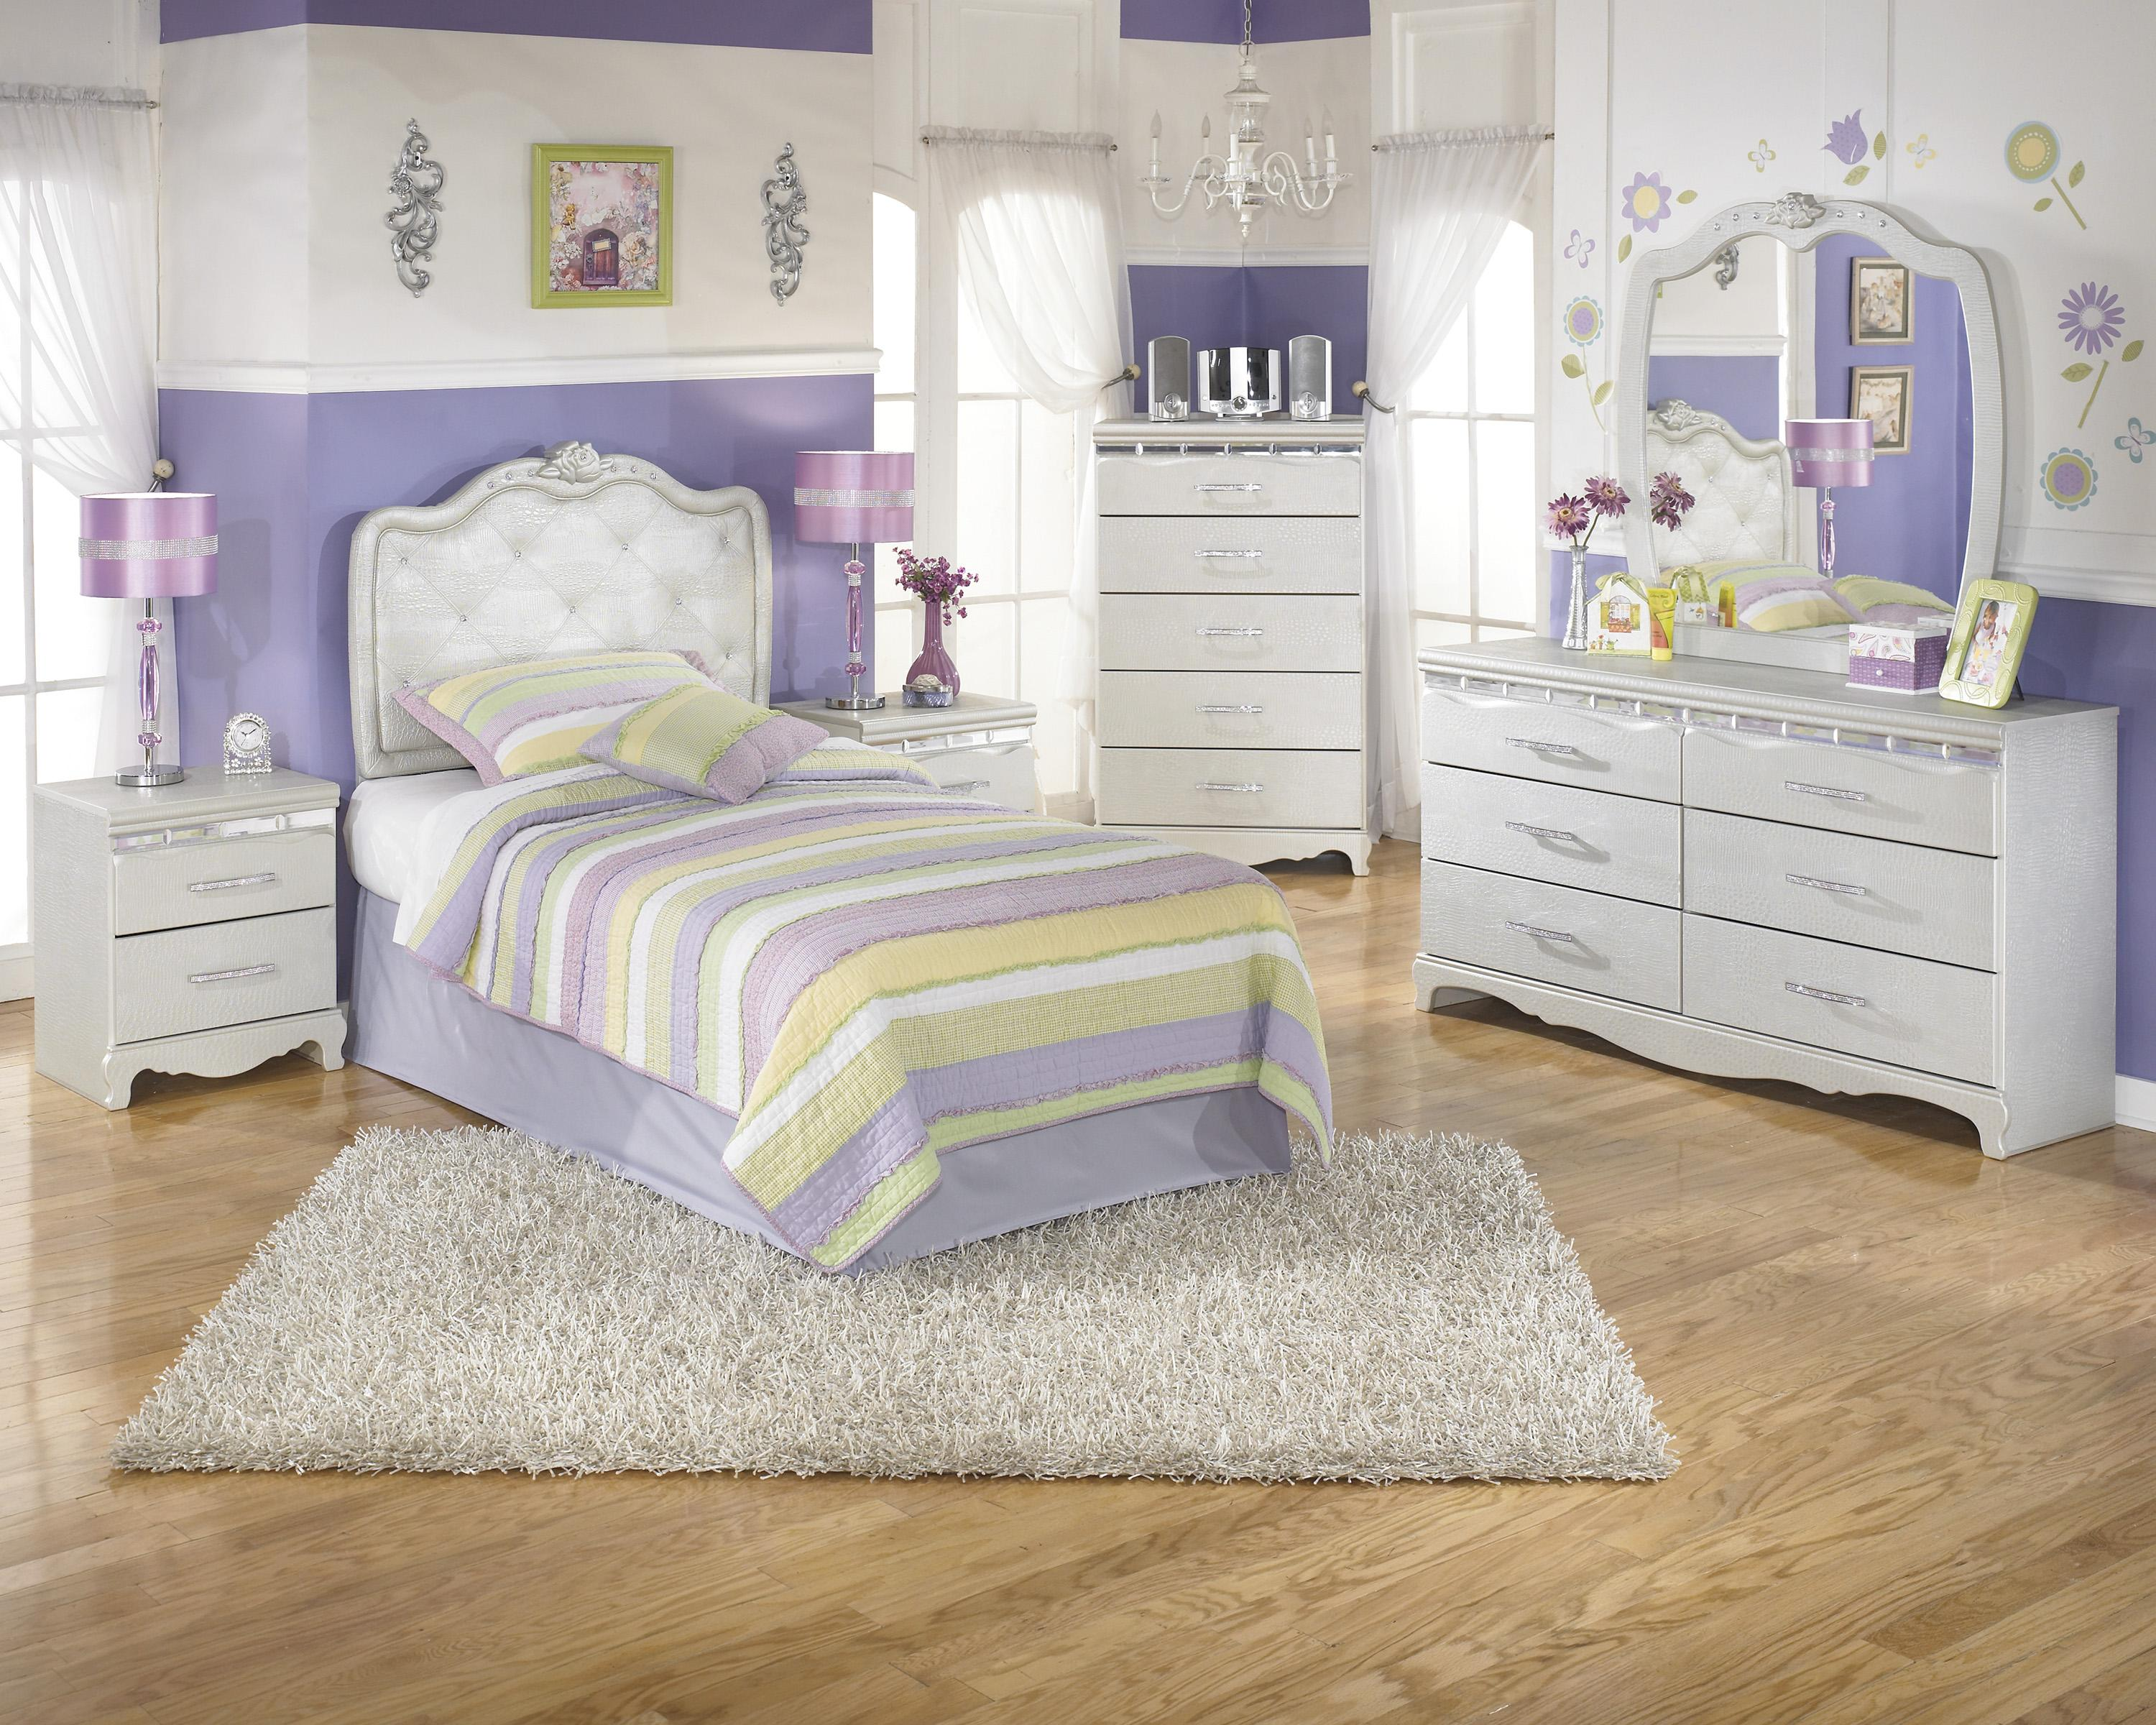 Signature Design by Ashley Zarollina Twin Bedroom Group - Item Number: B182 T Bedroom Group 3